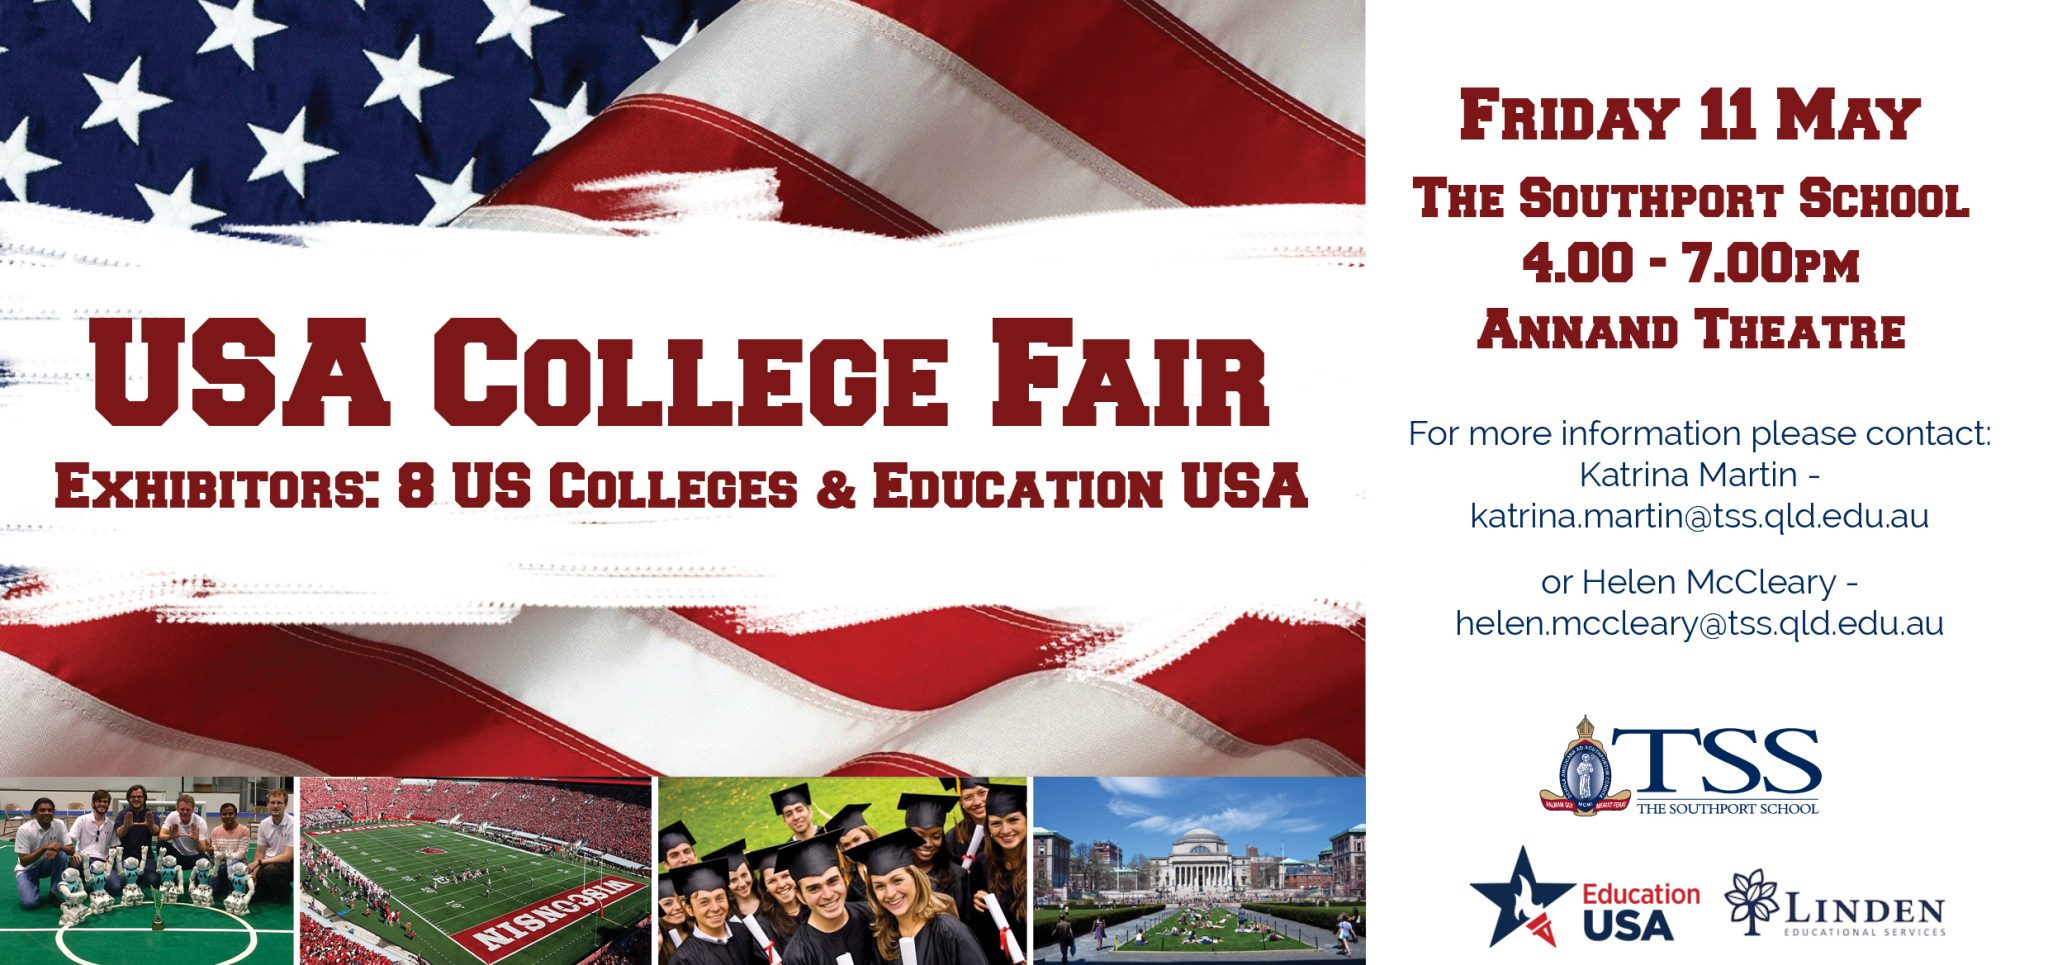 usa college fair the southport school